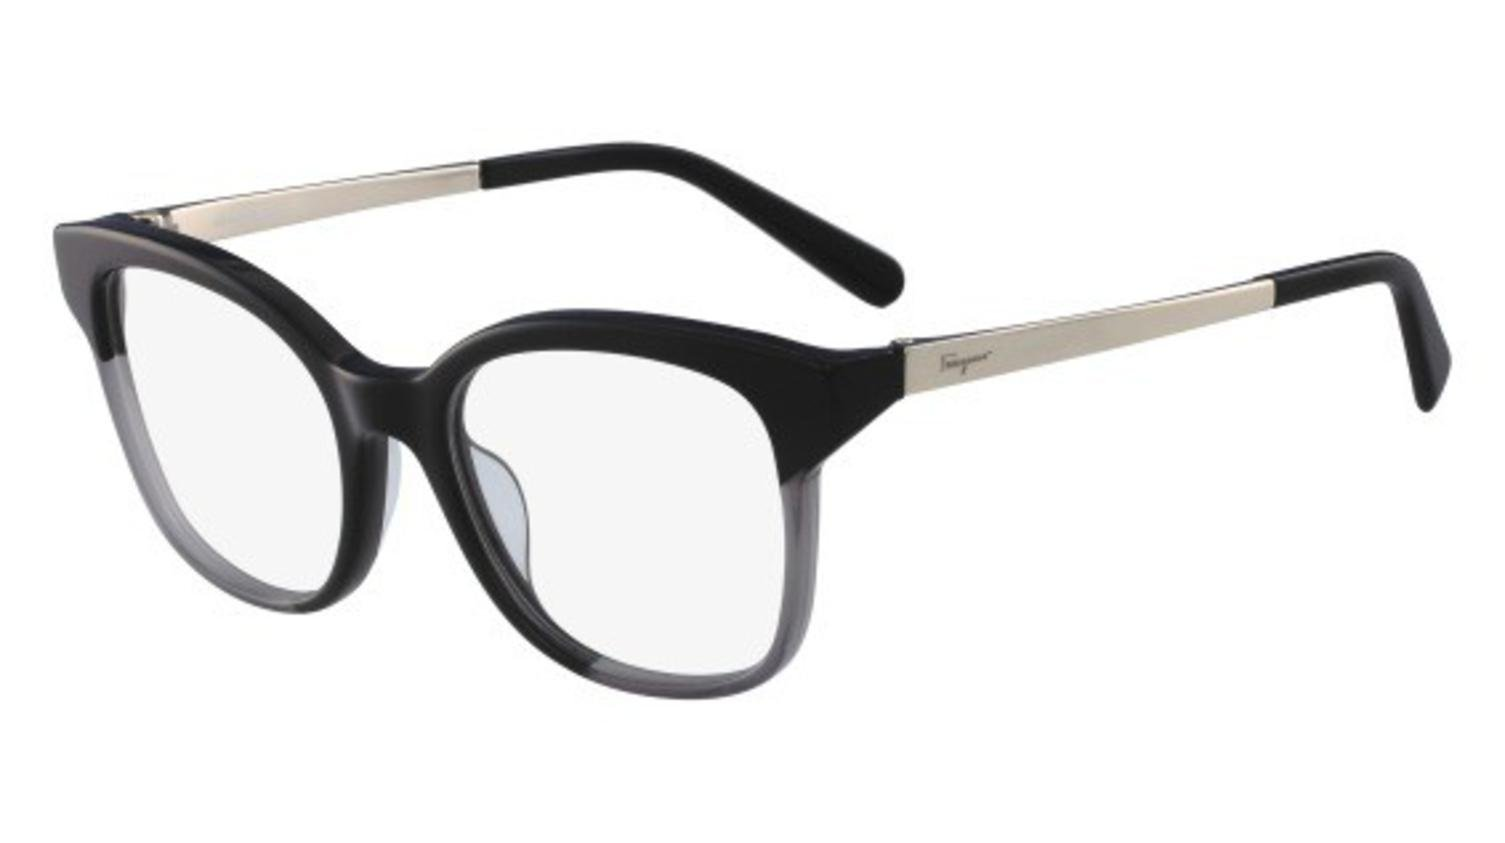 Eyeglasses FERRAGAMO SF 2776 013 BLACK/GREY